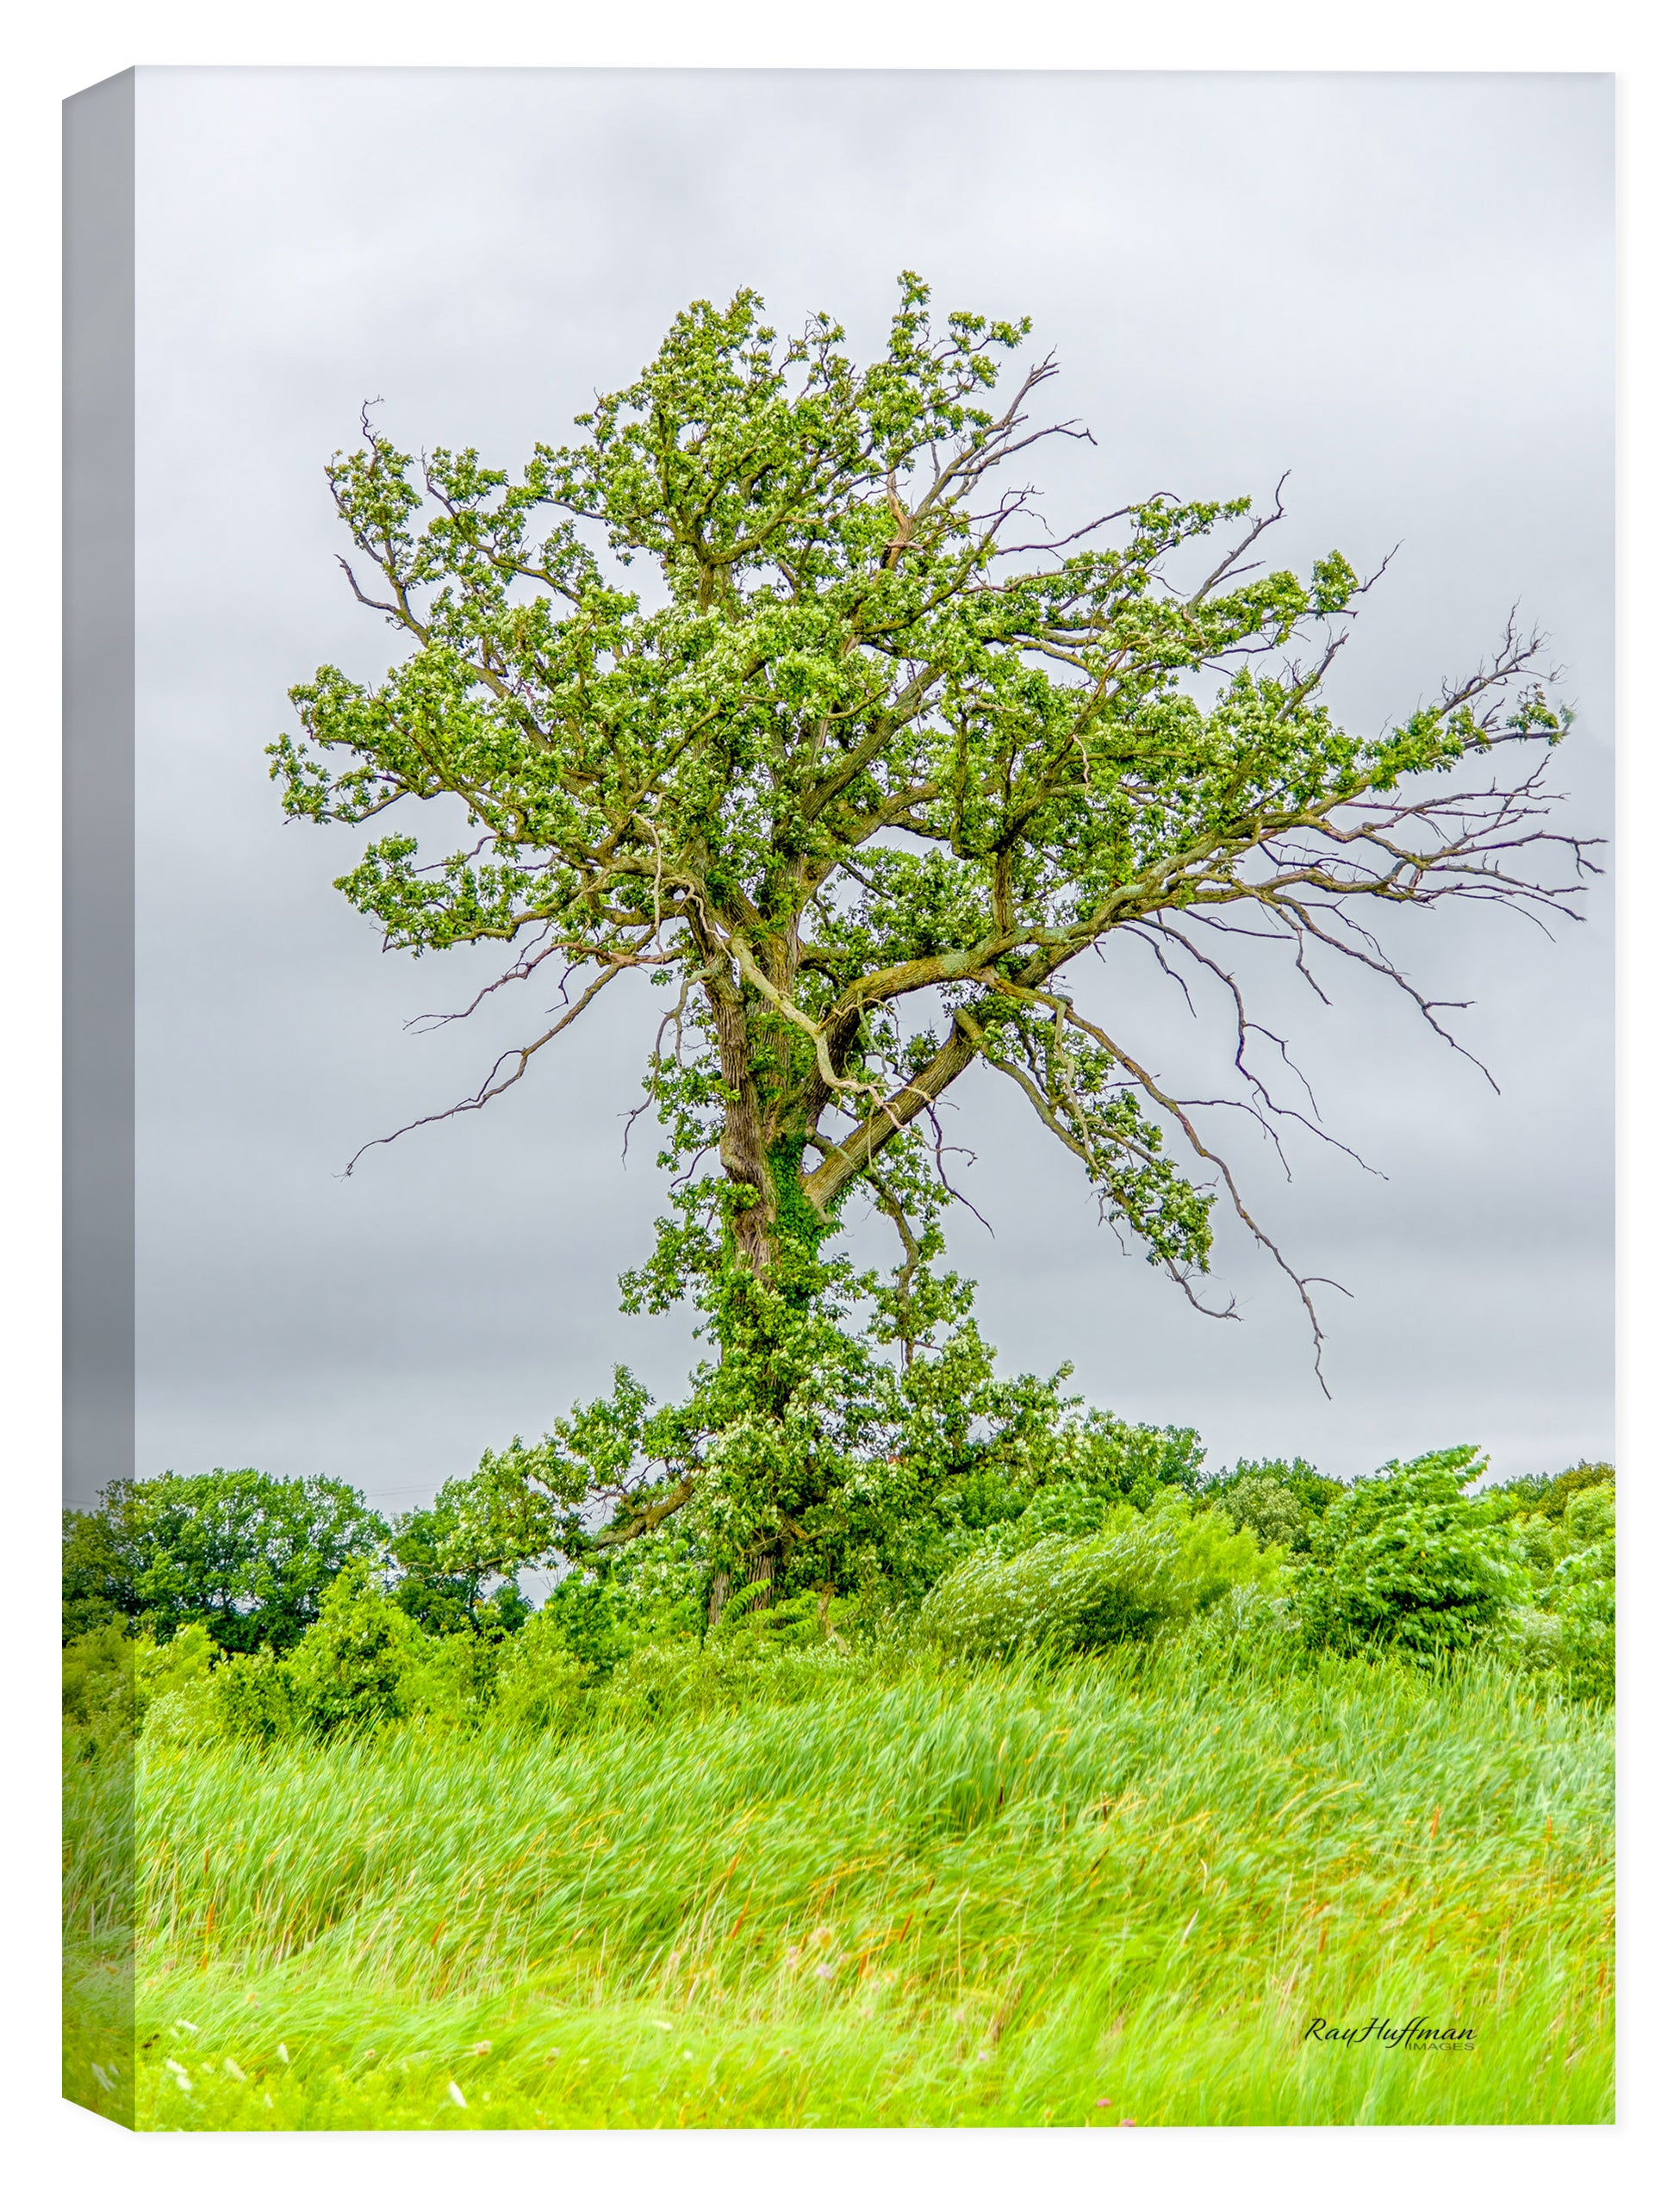 Tree & Grass - Photography by Ray Huffman on Canvas